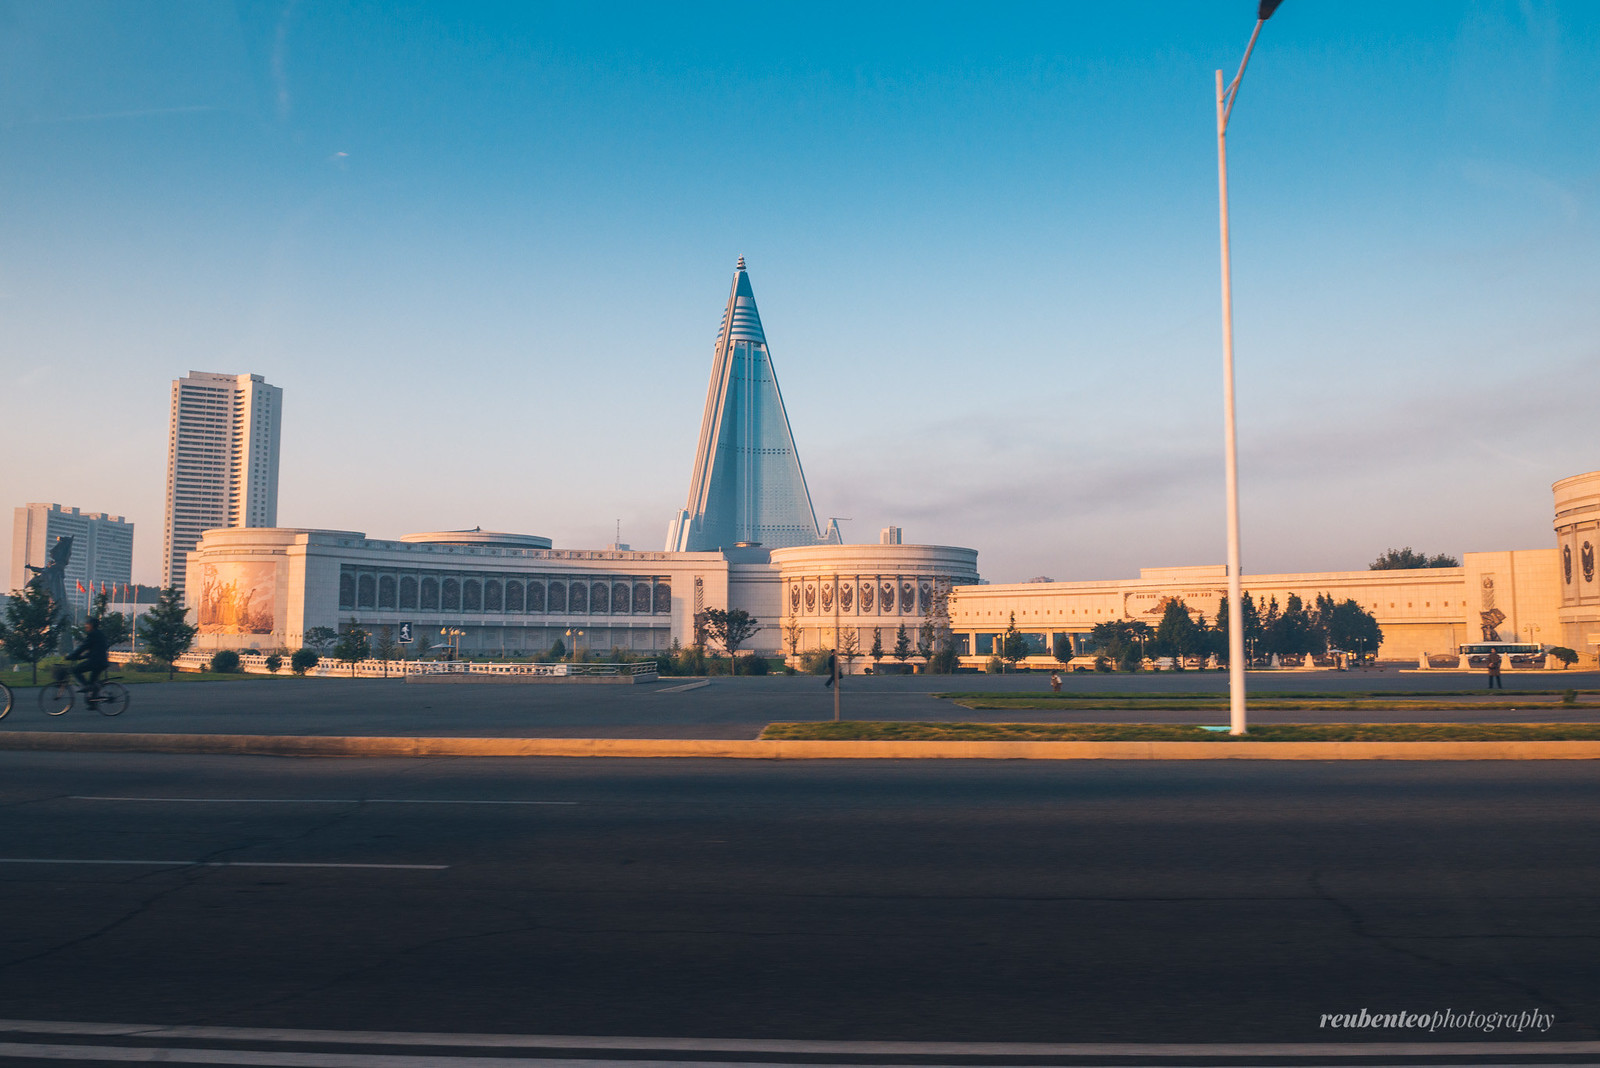 Ryugyong Hotel and Fatherland Liberation War Museum